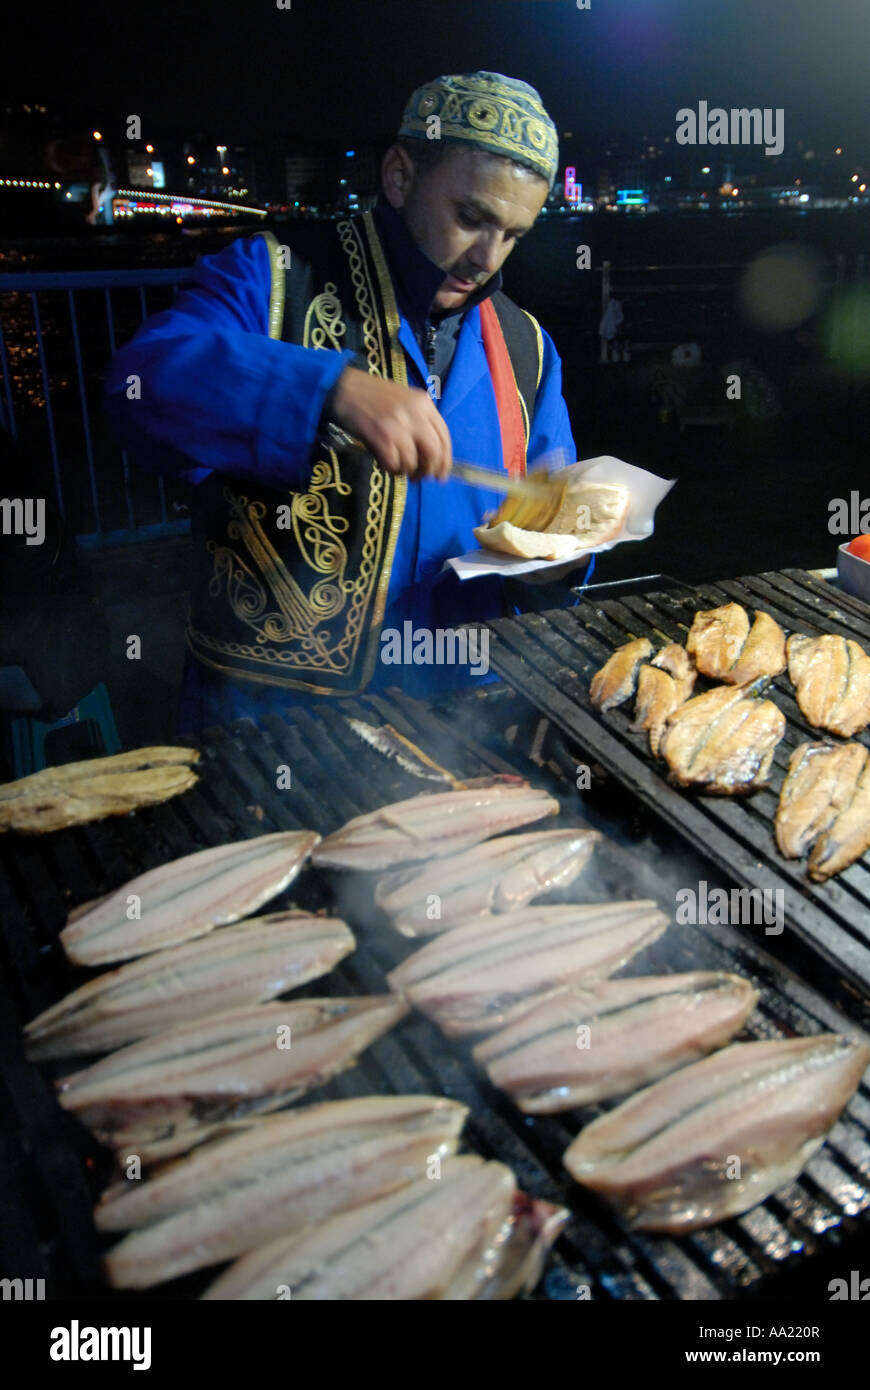 tradtional grilled fish sandwiche seller in Istanbul - Stock Image